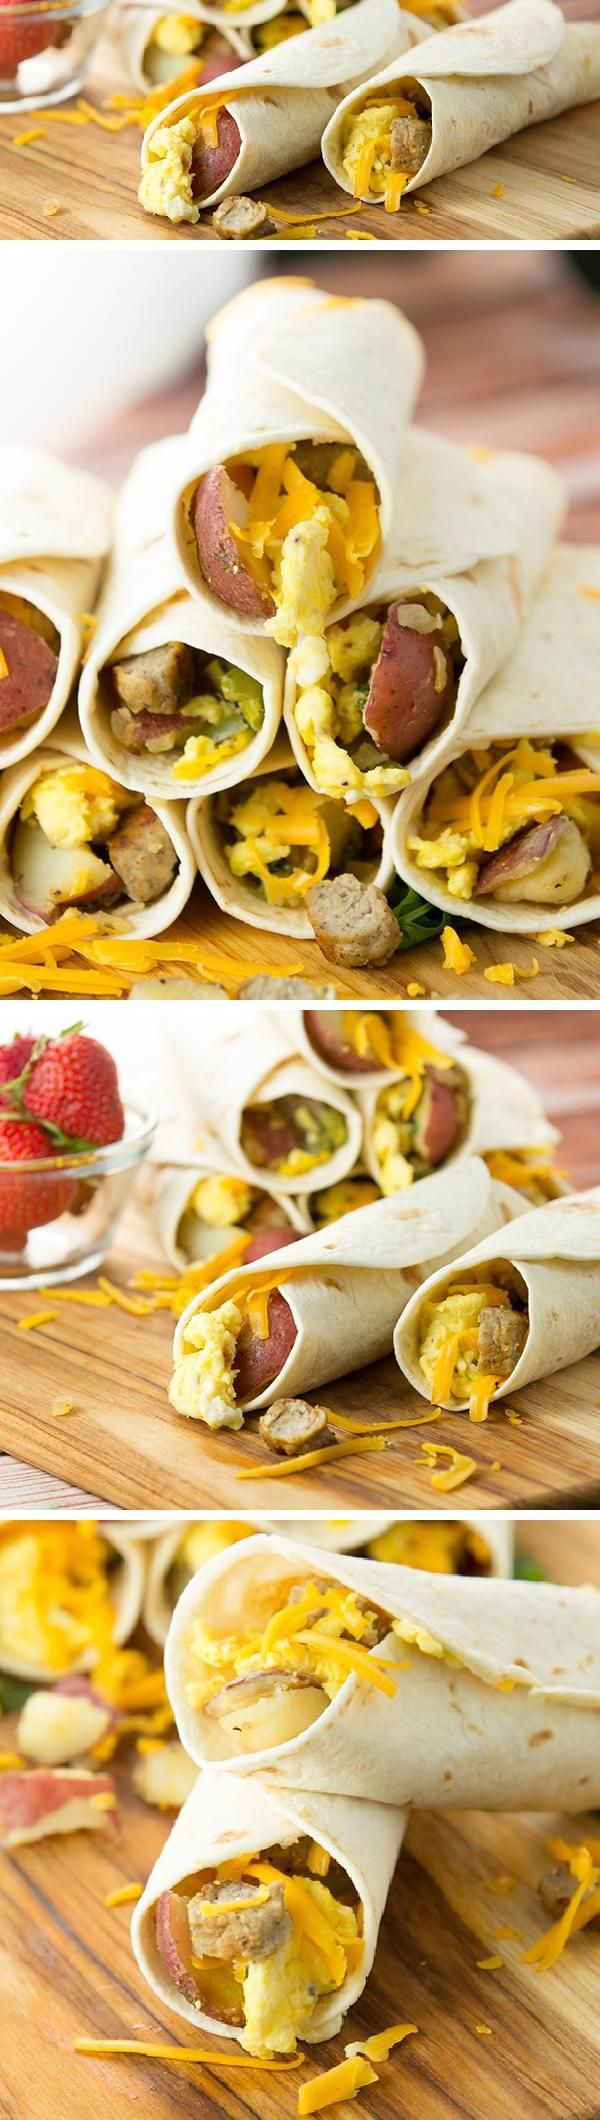 Simple BREAKFAST BURRITOS loaded with eggs, sausage, potatoes and cheese. Perfect for busy mornings. They freeze great too!